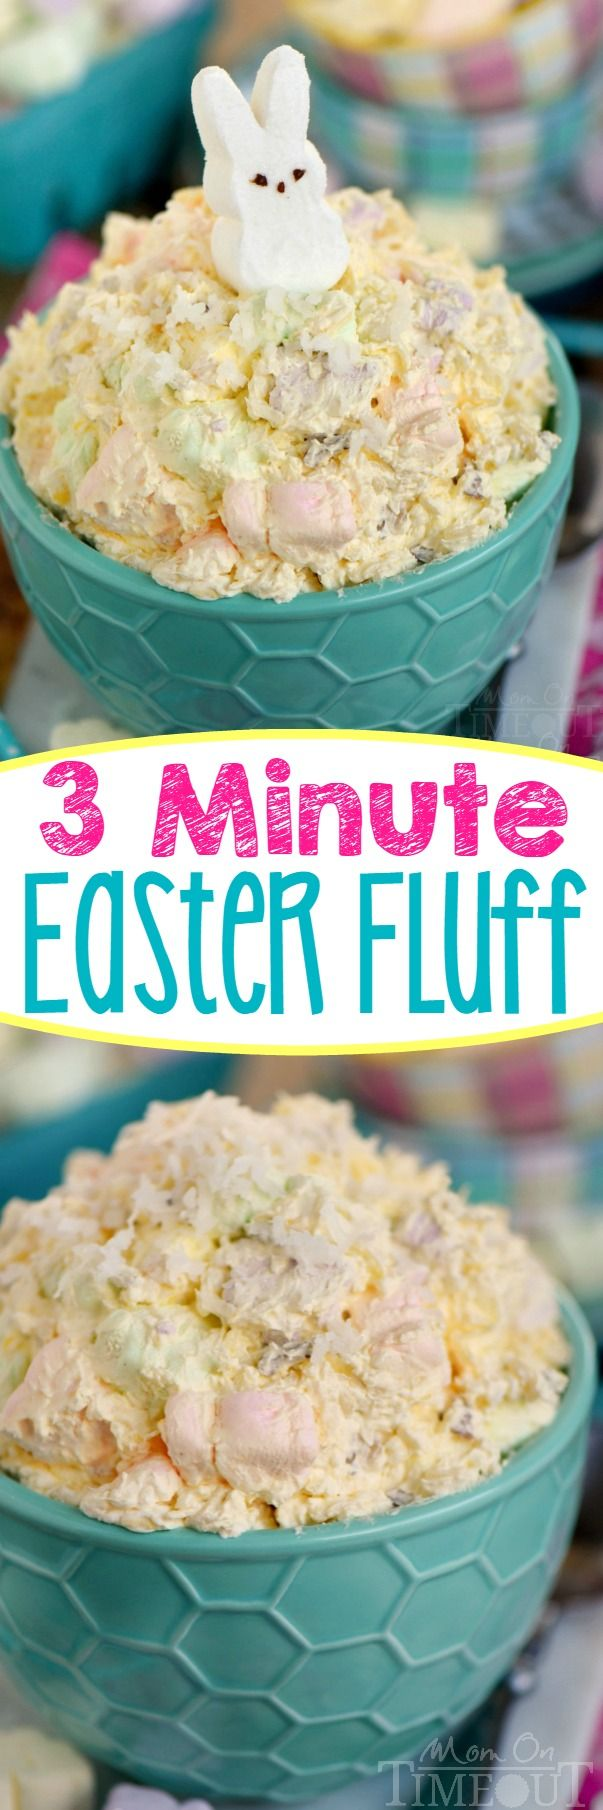 Three Minute Easter Fluff | Recipe | Easter | Pinterest | Delicious ...